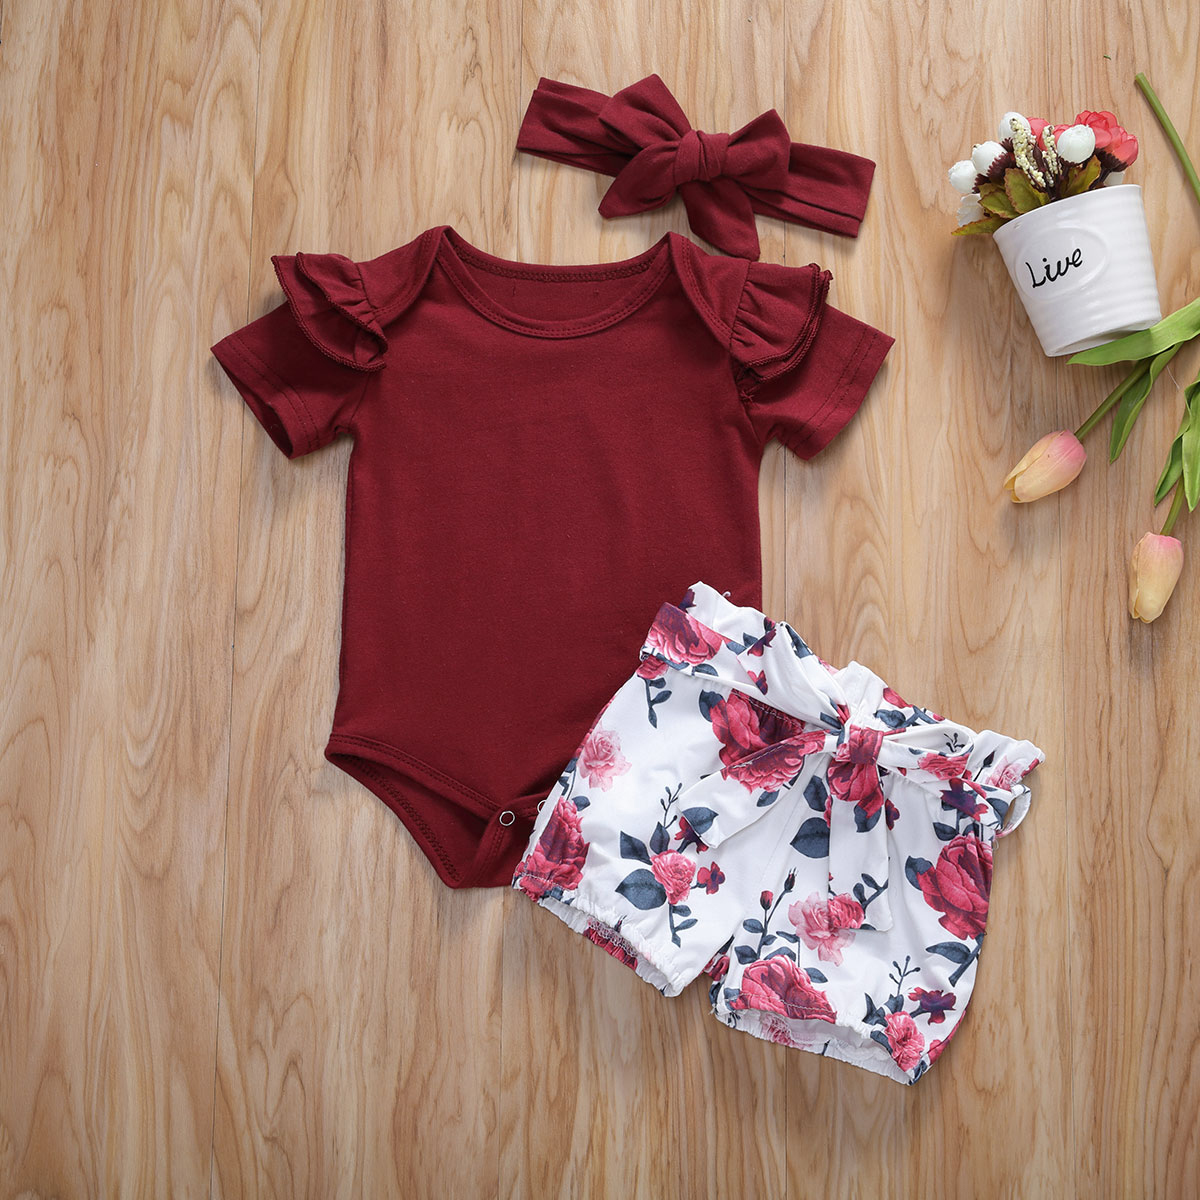 Pudcoco Newborn Baby Girl Clothes Solid Color Short Sleeve Knitted Cotton Romper Tops Flower Print Shorts Headband 3Pcs Outfits